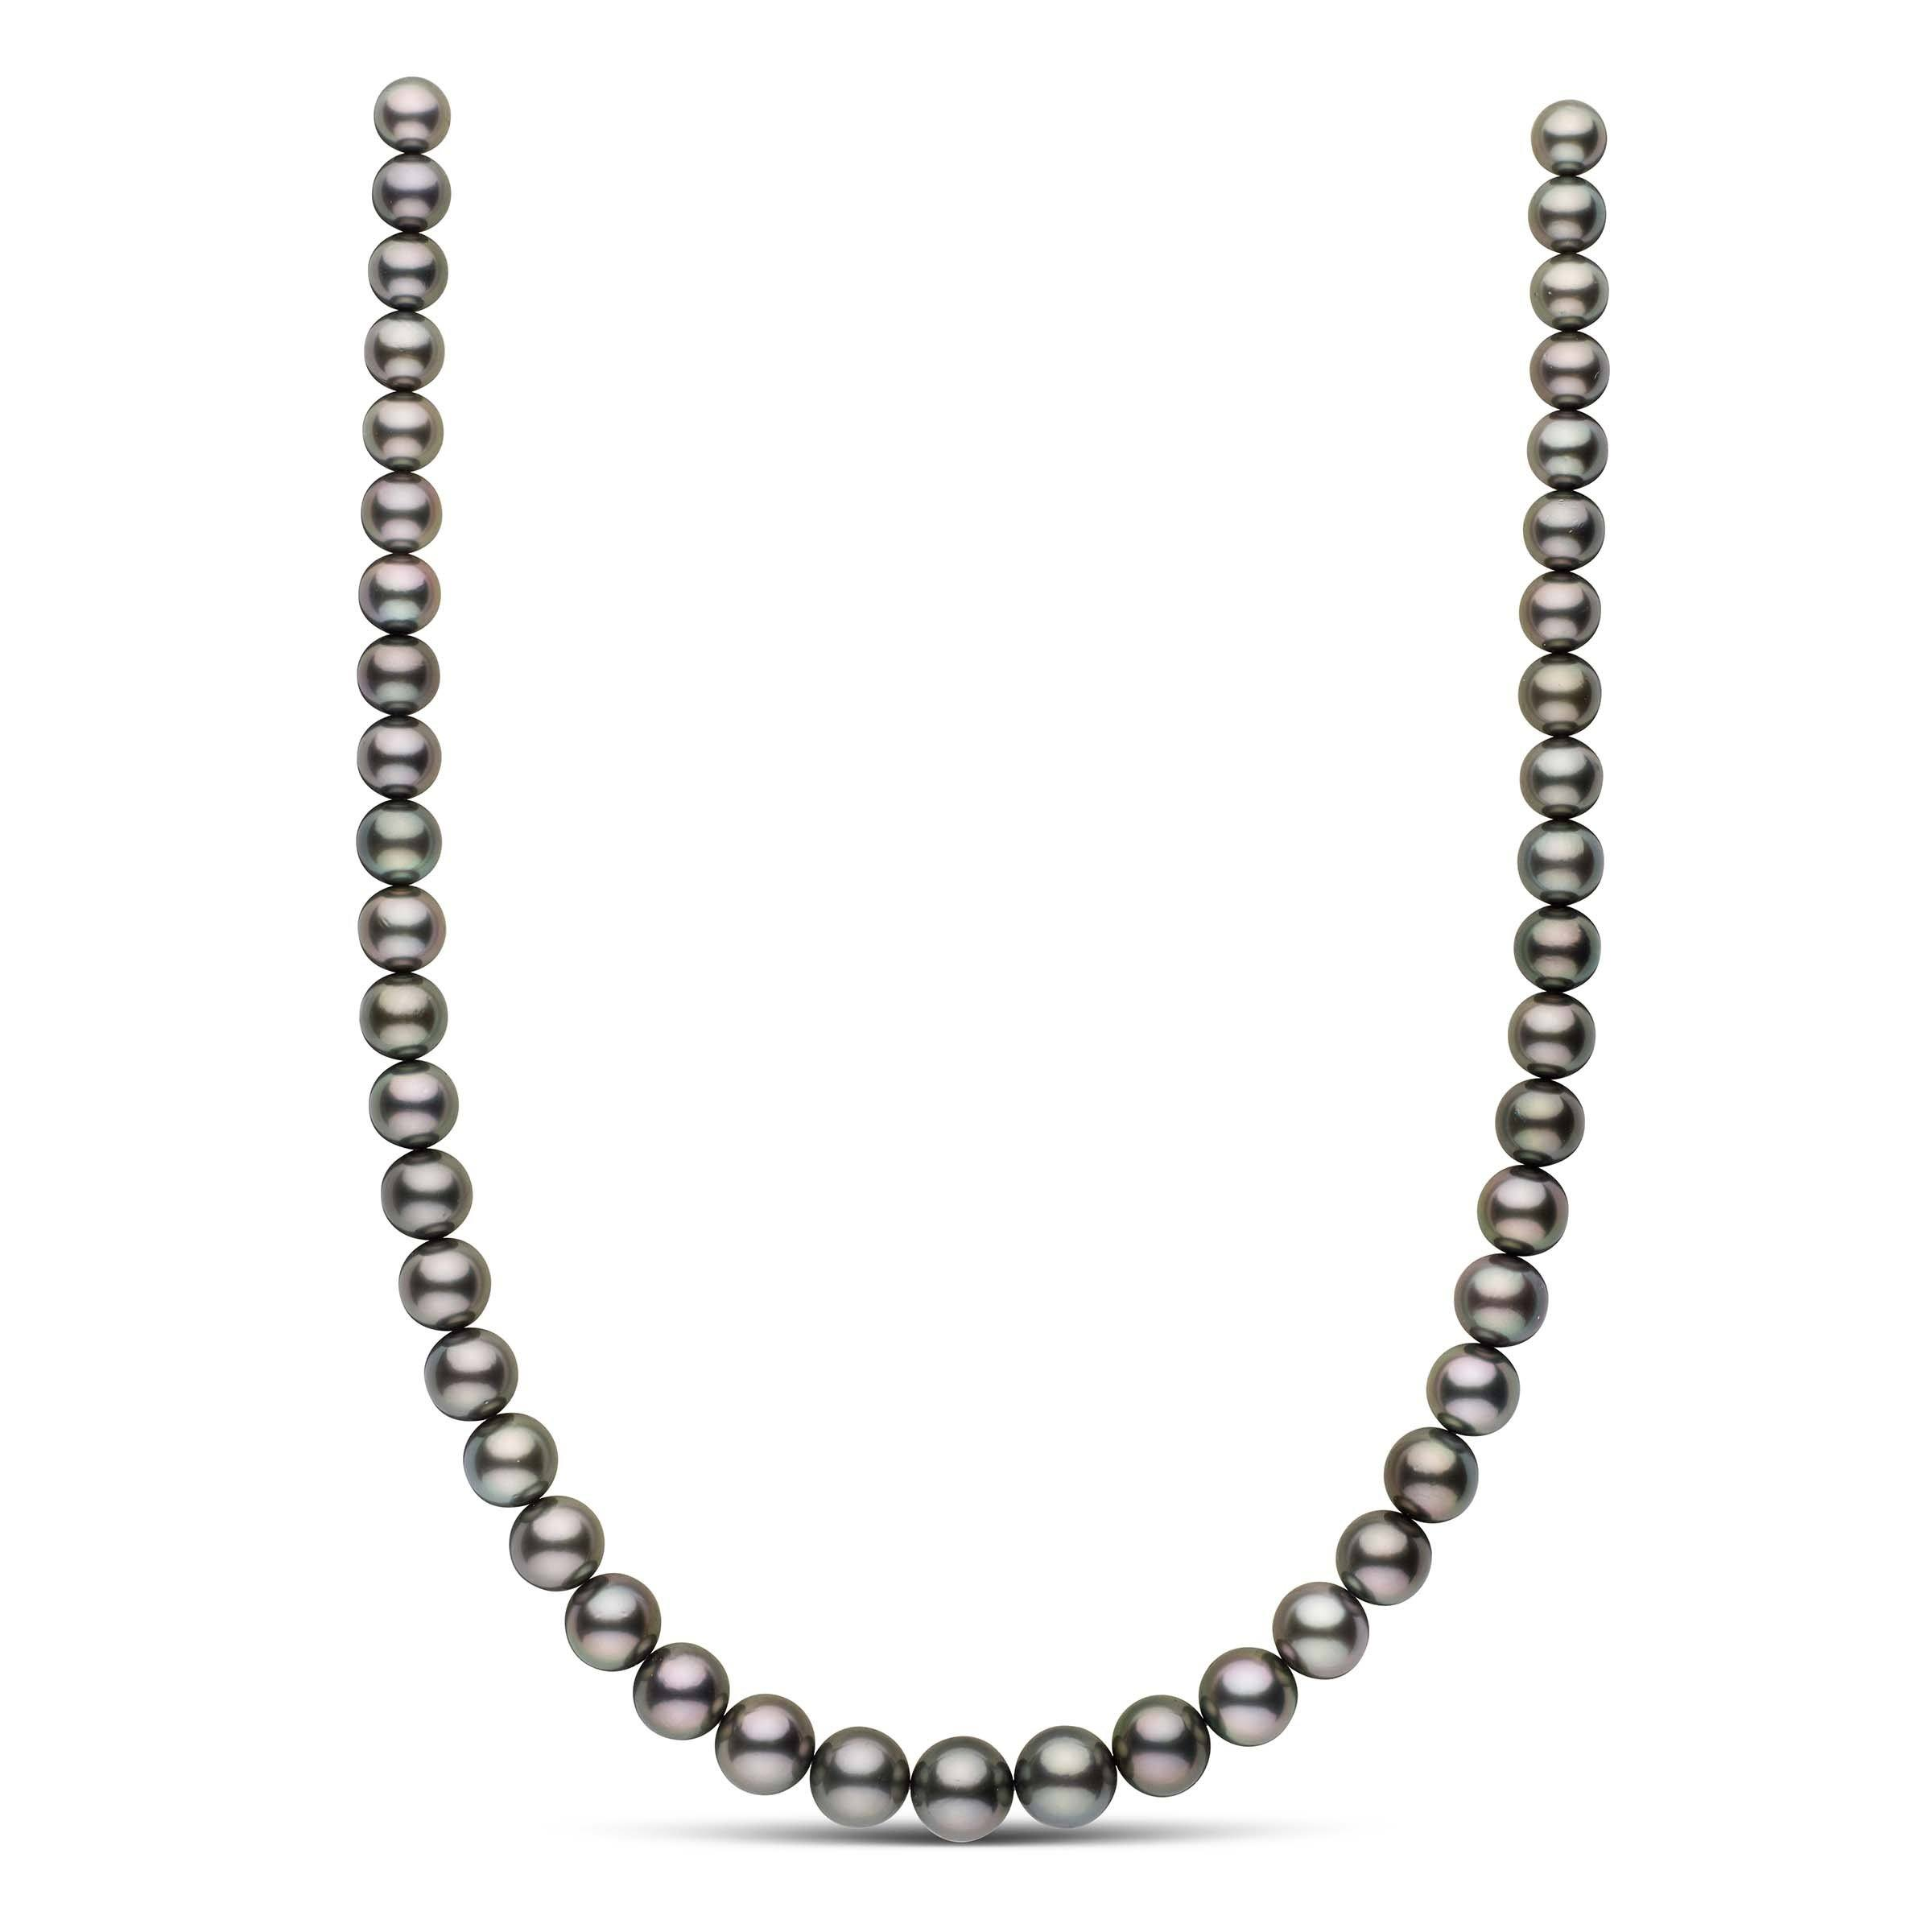 18-inch 8.0-10.8 mm AAA Round Tahitian Pearl Necklace